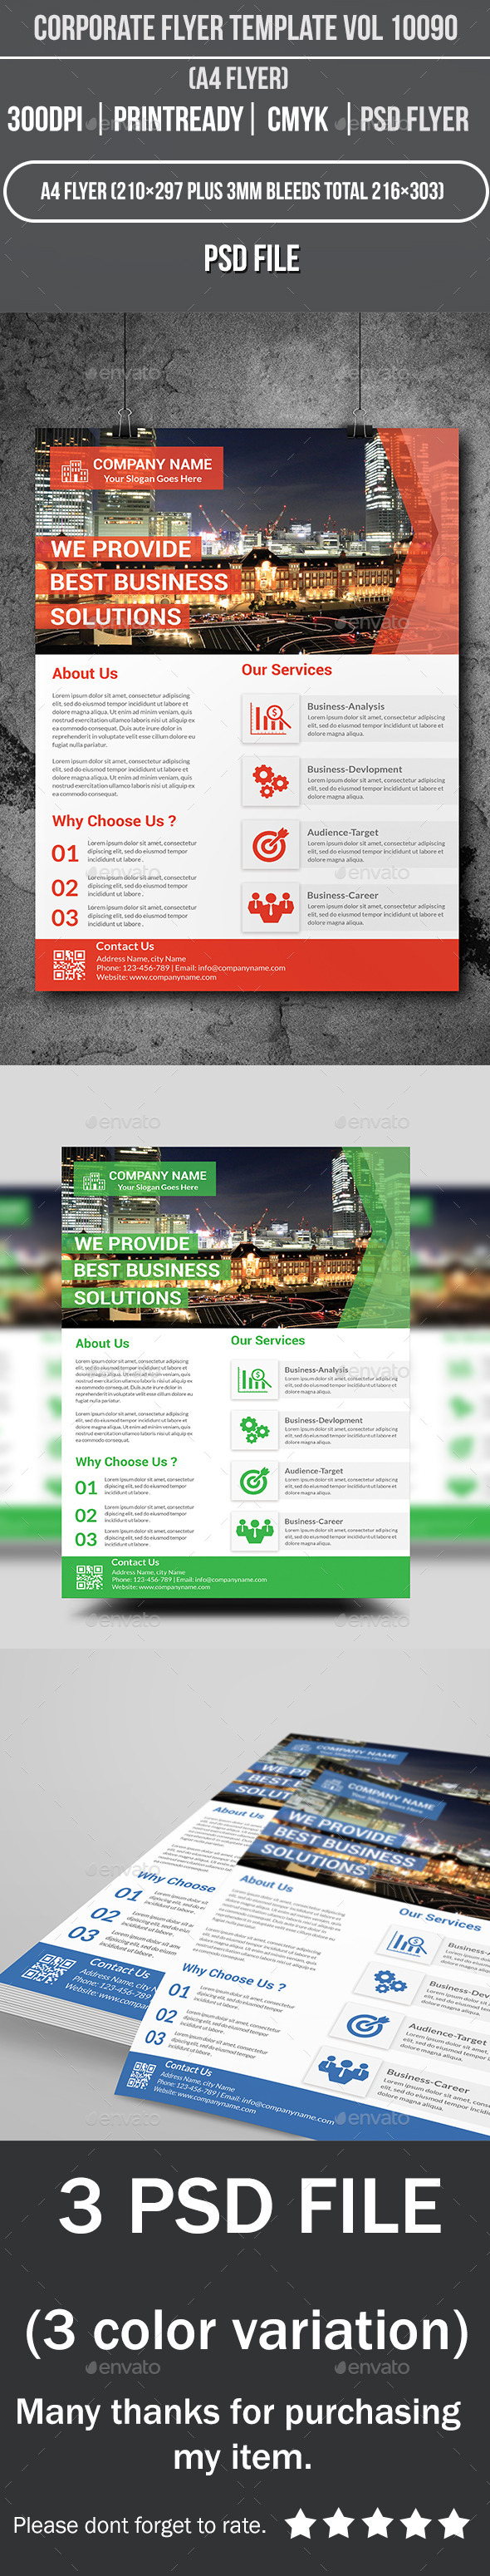 GraphicRiver Corporate Flyer Template Vol 10090 9941323